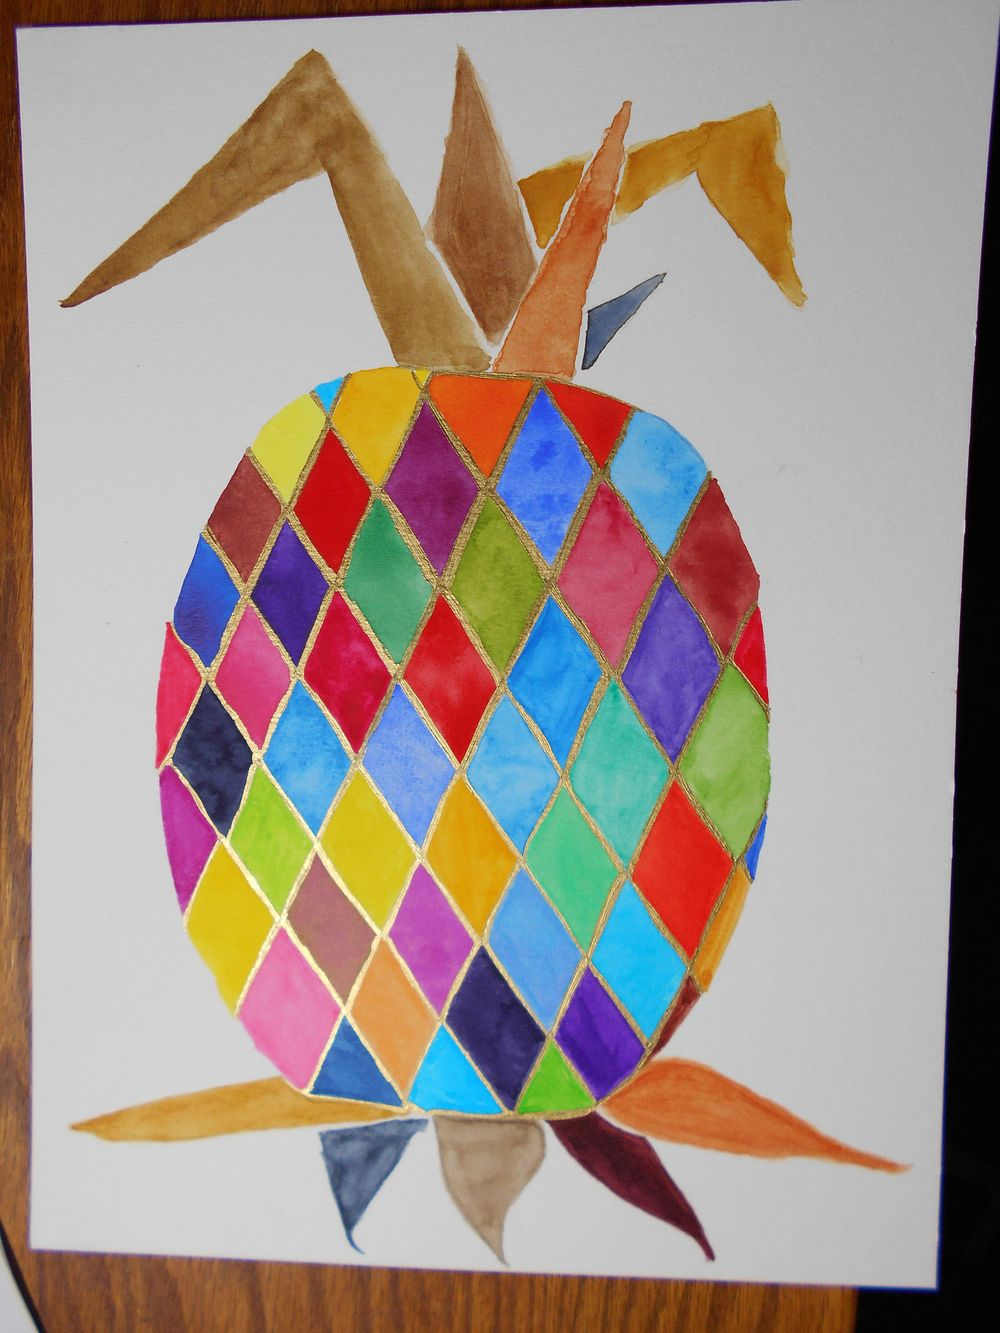 My pineapple - image 1 - student project